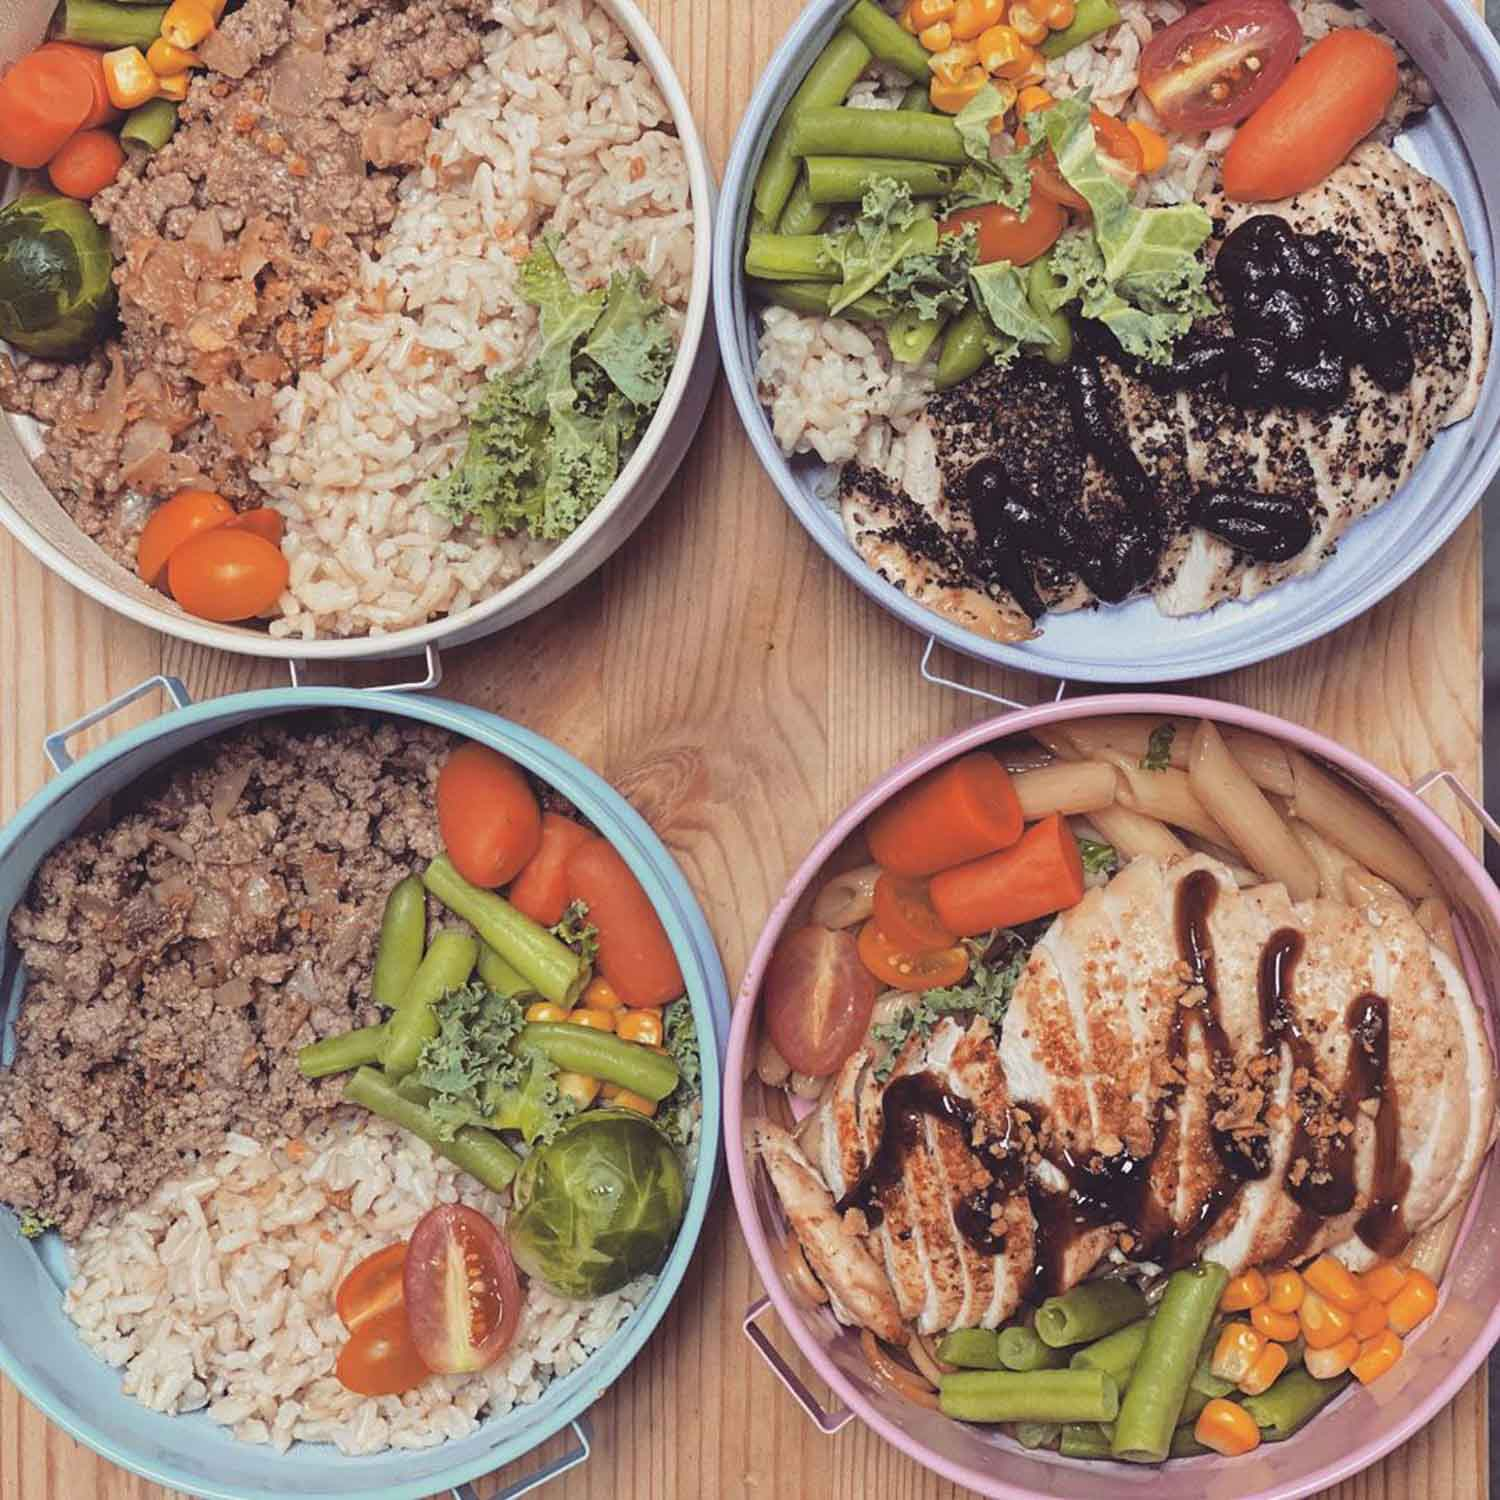 Healthy Food Delivery - Eat fit meal prep